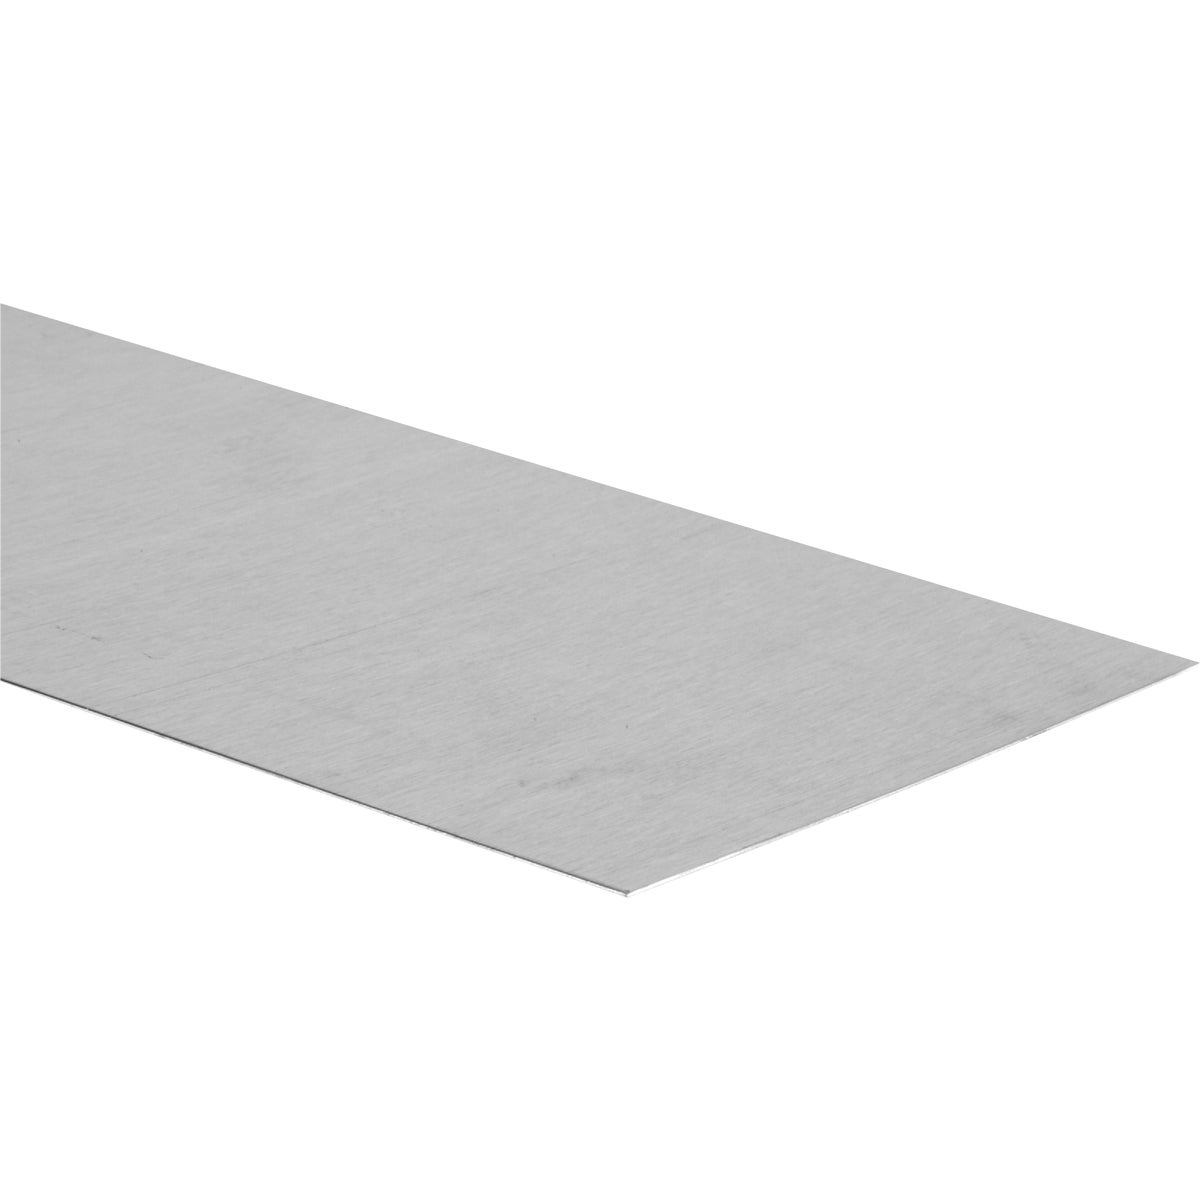 .025 6X18 ALUMINUM SHEET - N346809 by National Mfg Co